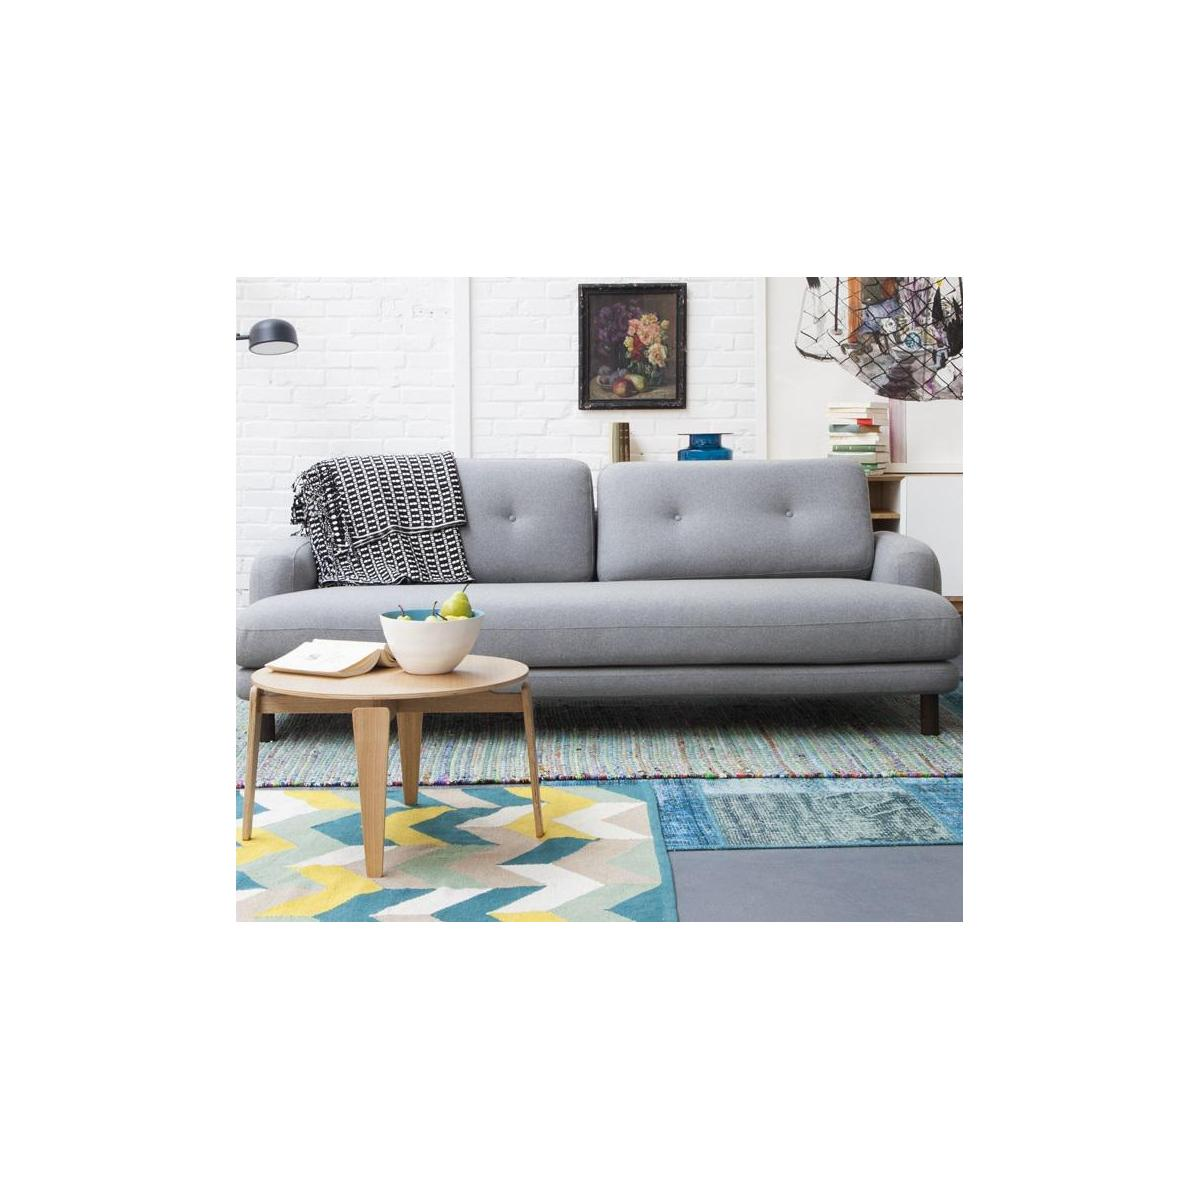 3-seater sofa in wool felt n°11